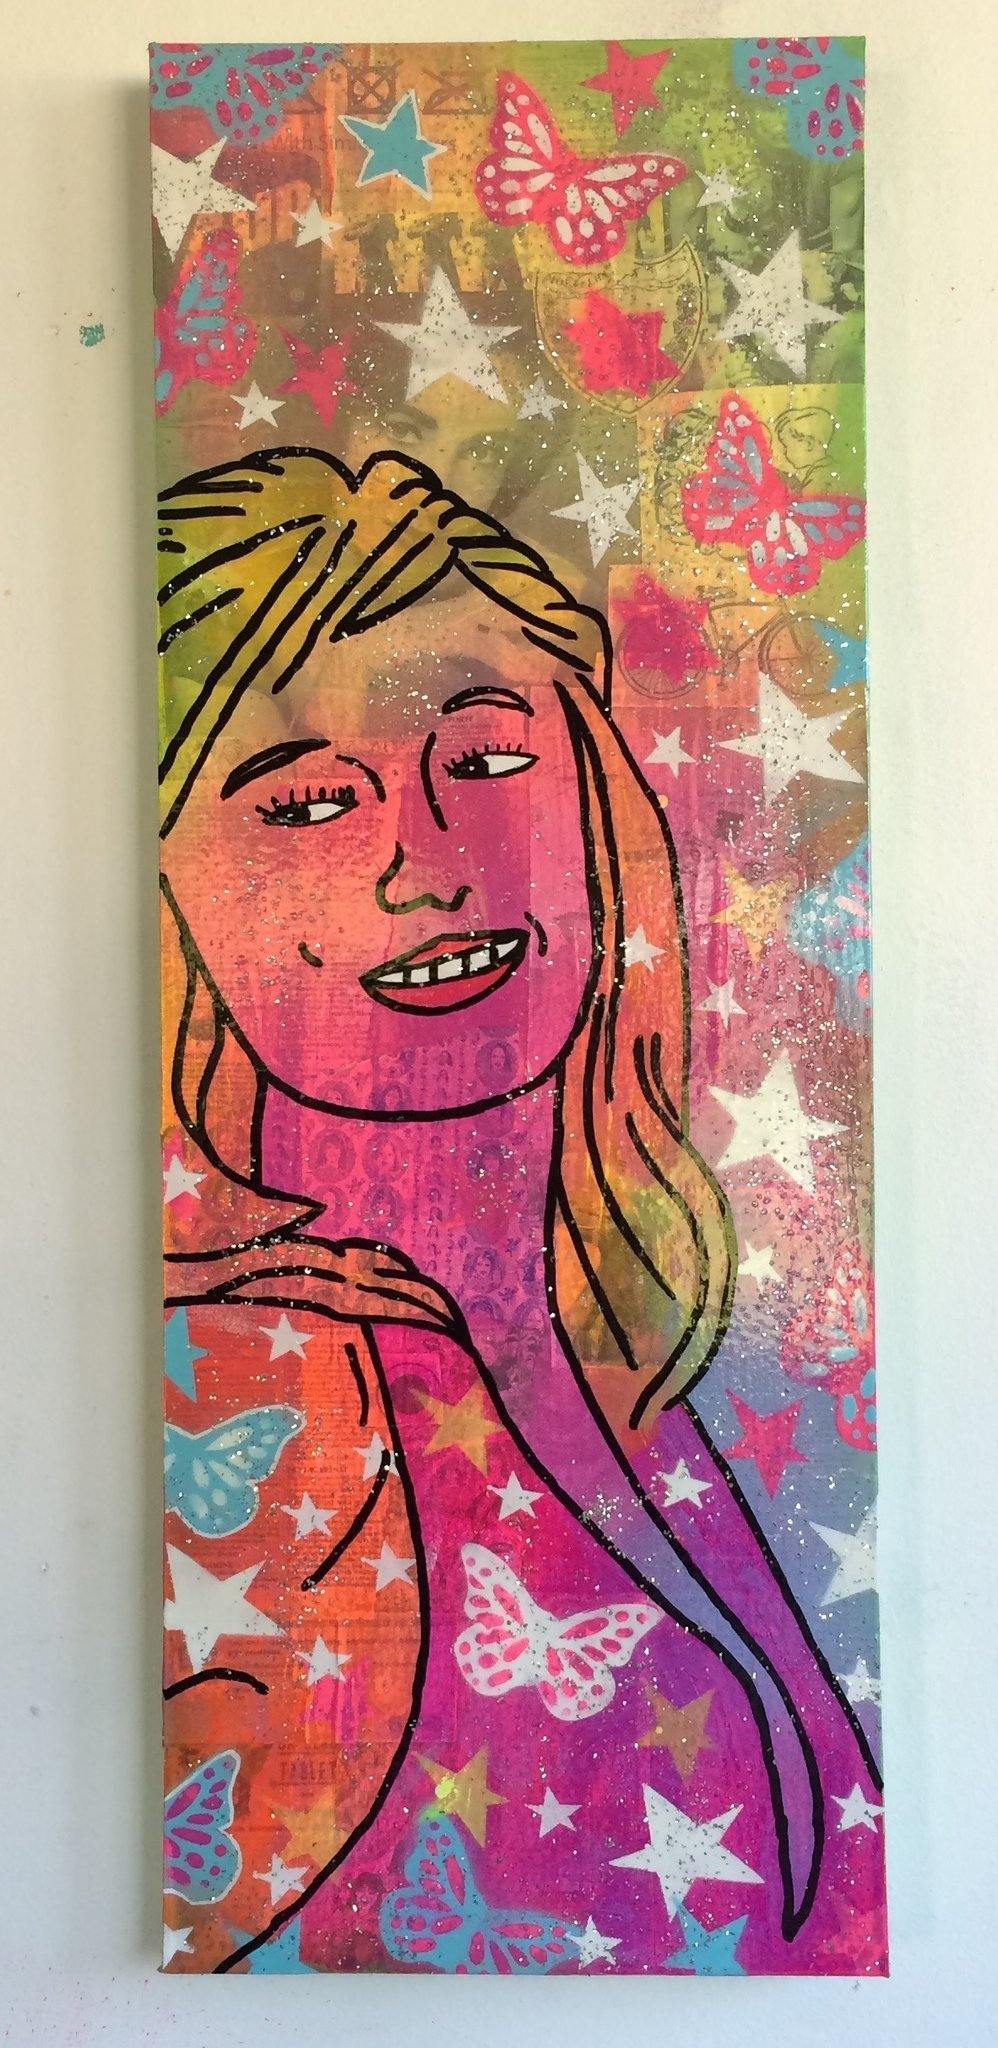 Screenshot by Barrie J Davies 2015, Mixed media on canvas, 30cm x 80cm, unframed. Barrie J Davies is an Artist - Pop Art and Street art inspired Artist based in Brighton England UK - Pop Art Paintings, Street Art Prints & Editions available.